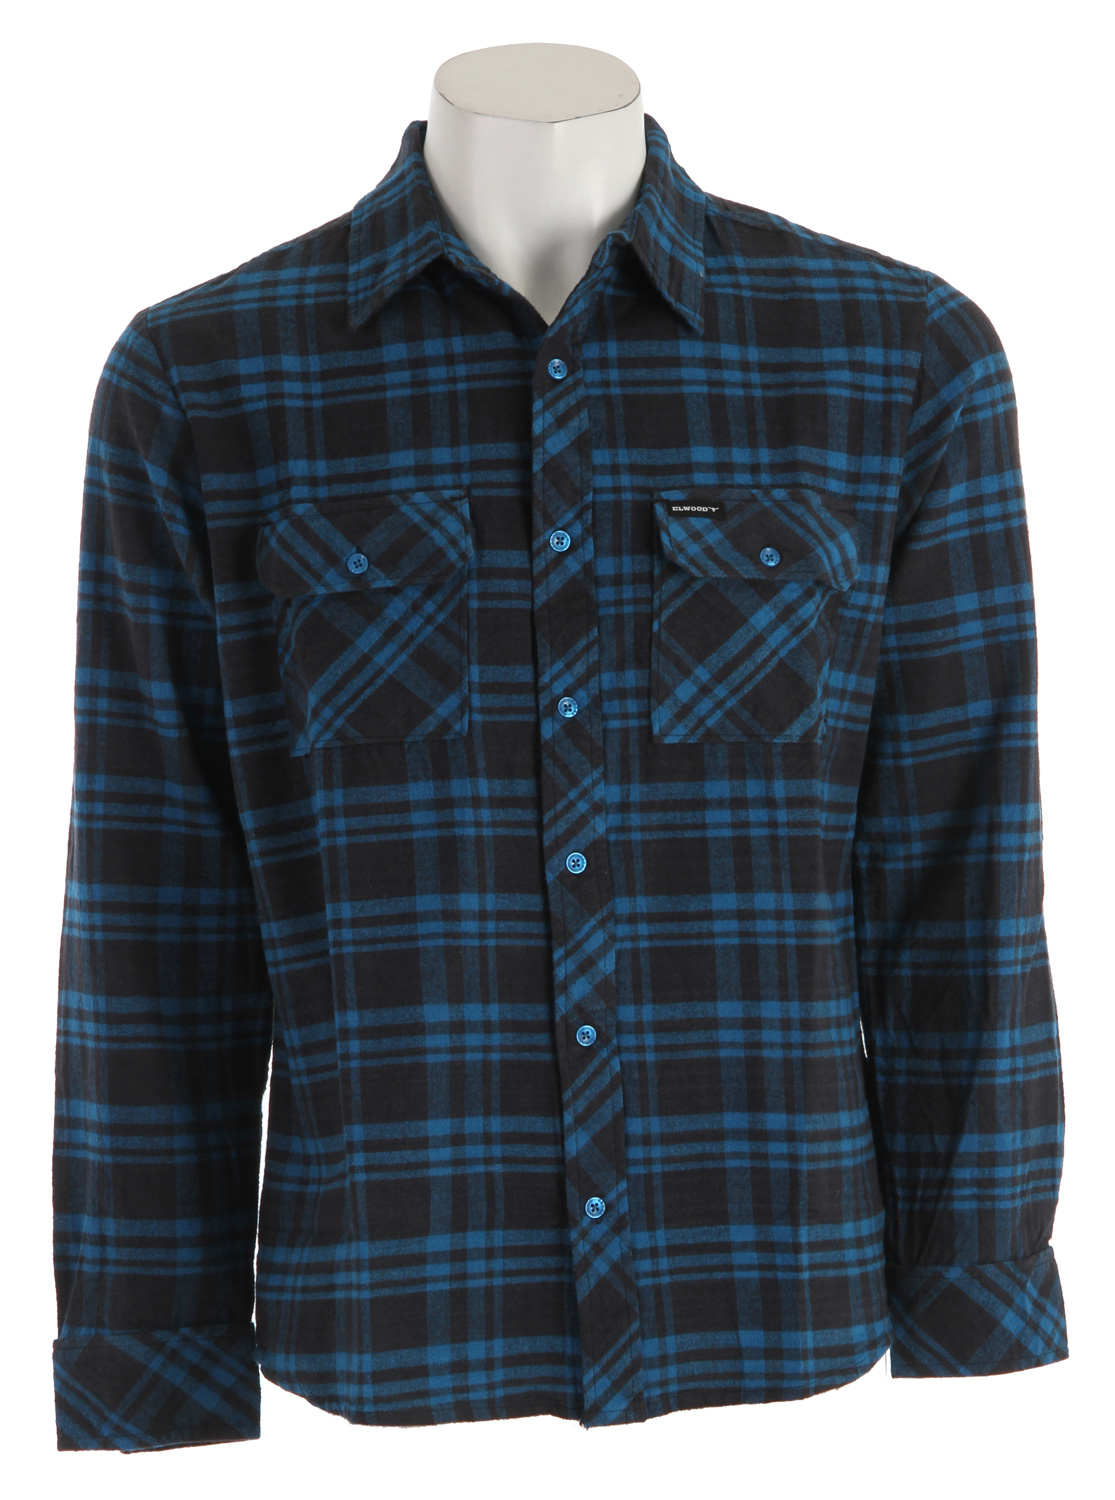 Key Features of the Elwood OG Flannel Shirt: 100% cotton plaid flannel shirt Elwood stock logo buttons and trim package - $49.95